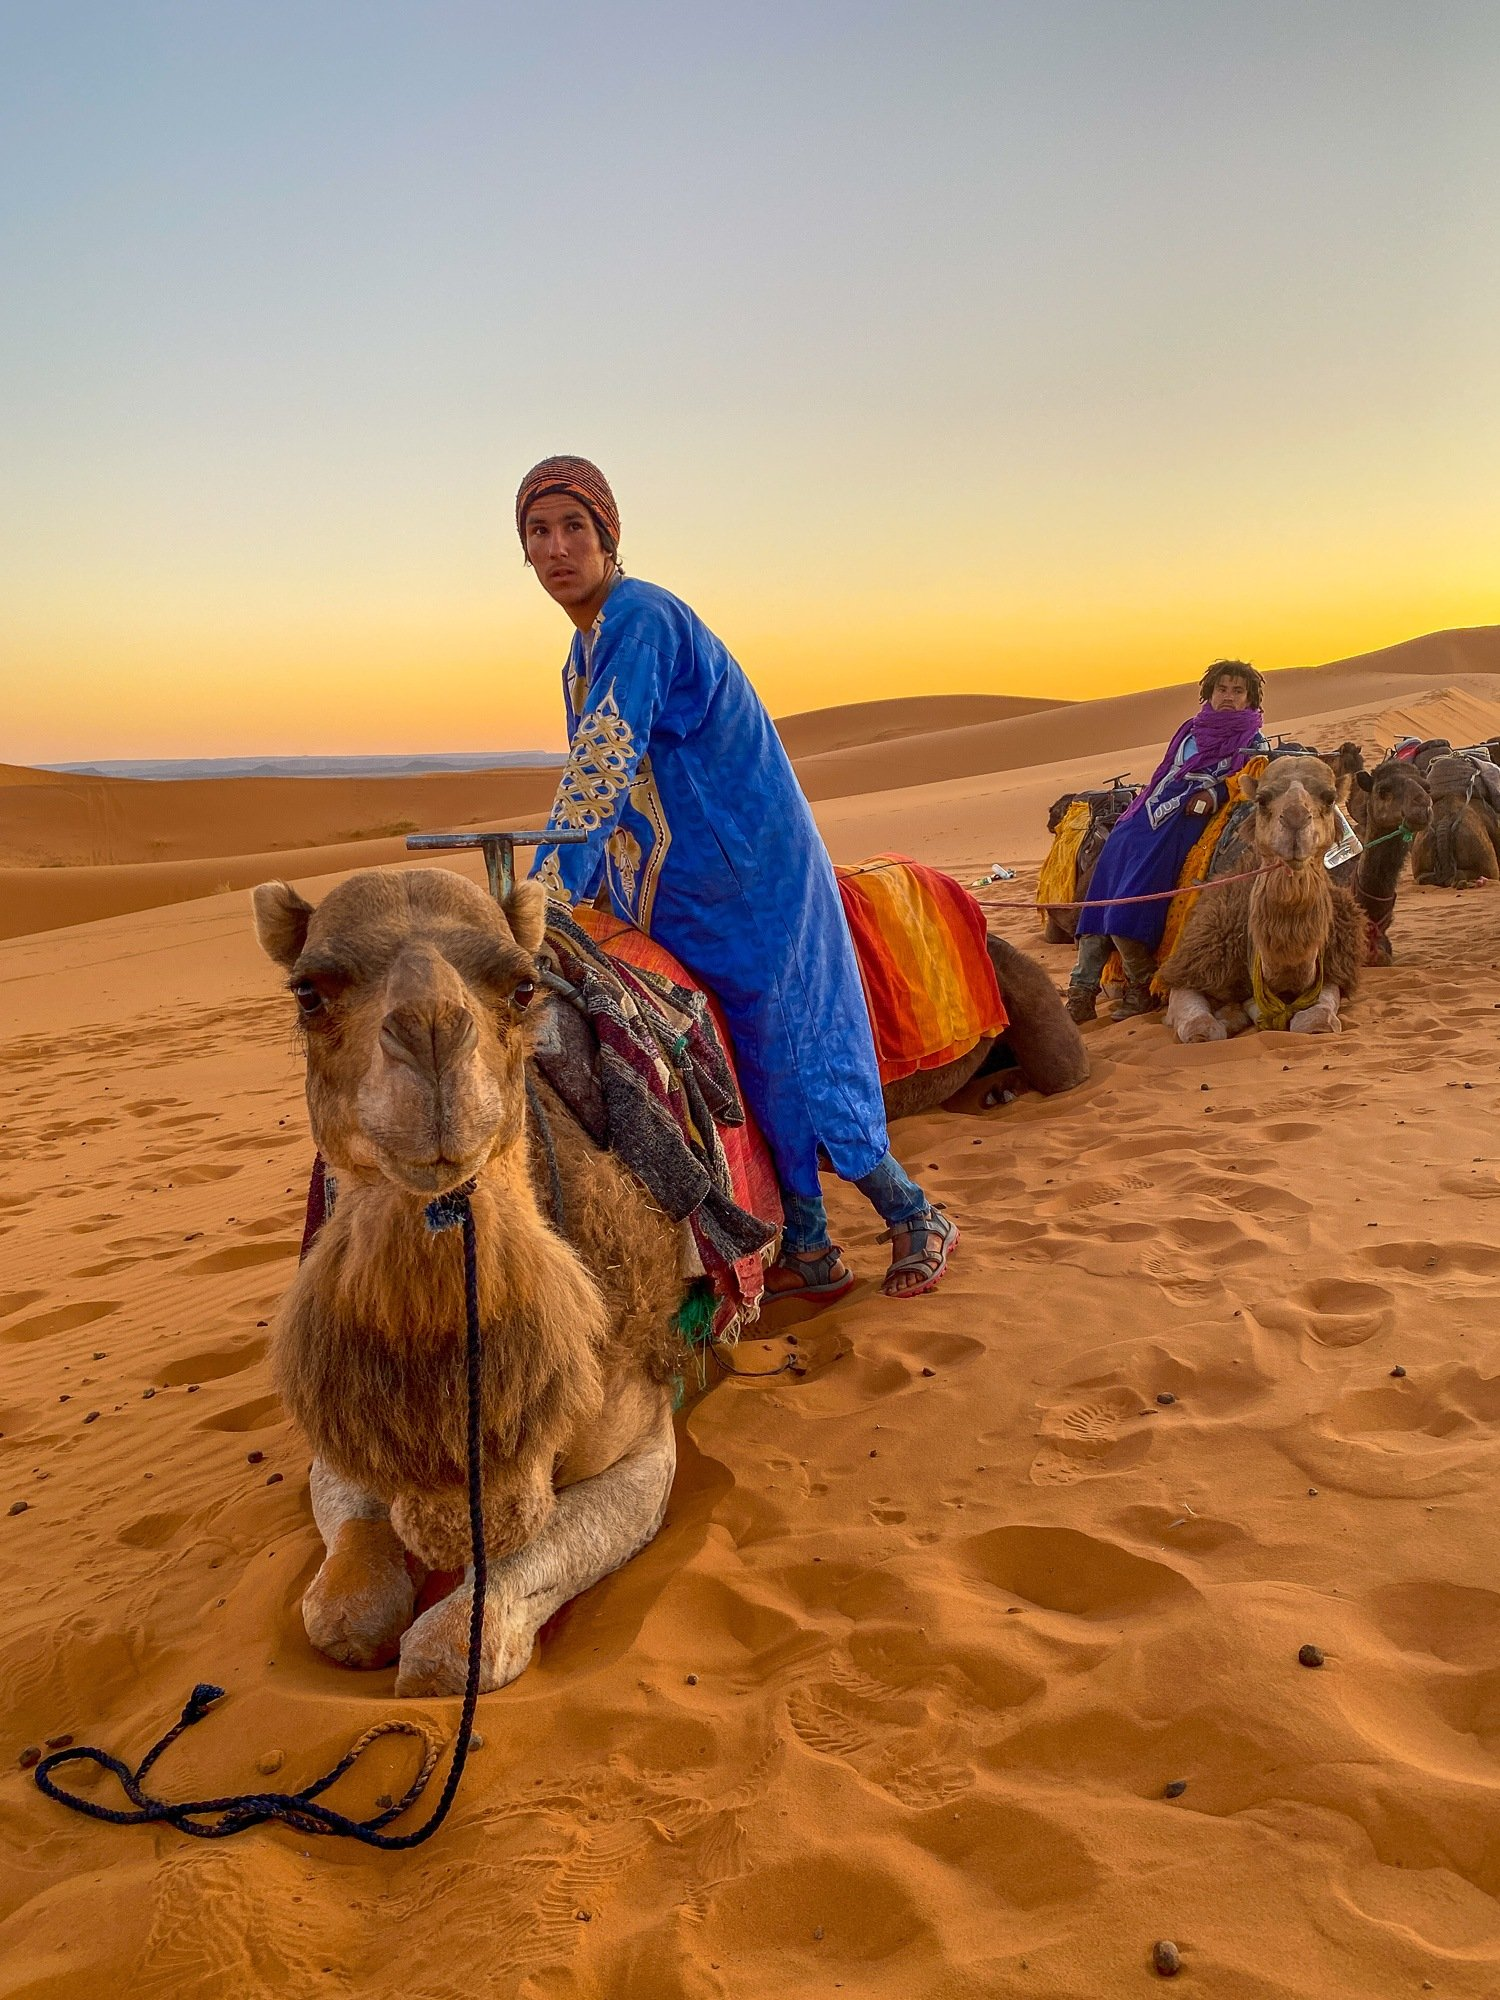 Camel safari guide in the Sahara Desert